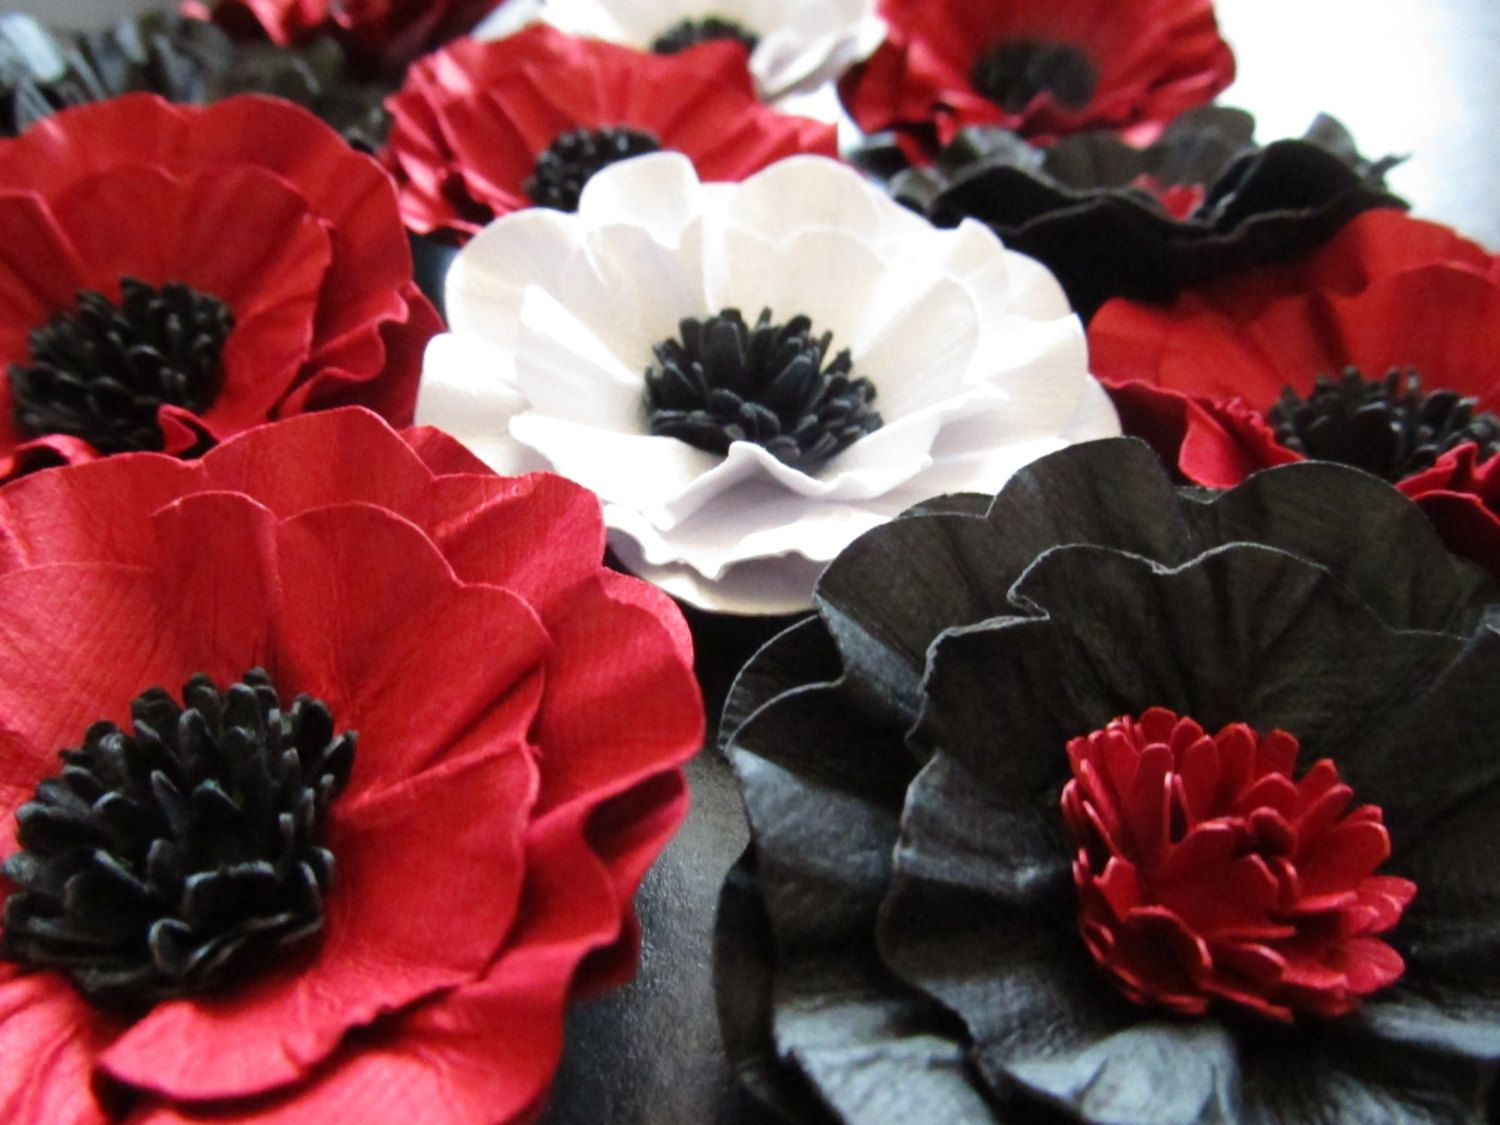 Weddings Handmade Paper Poppy Flowers 100 2 12 Inch In The Colors